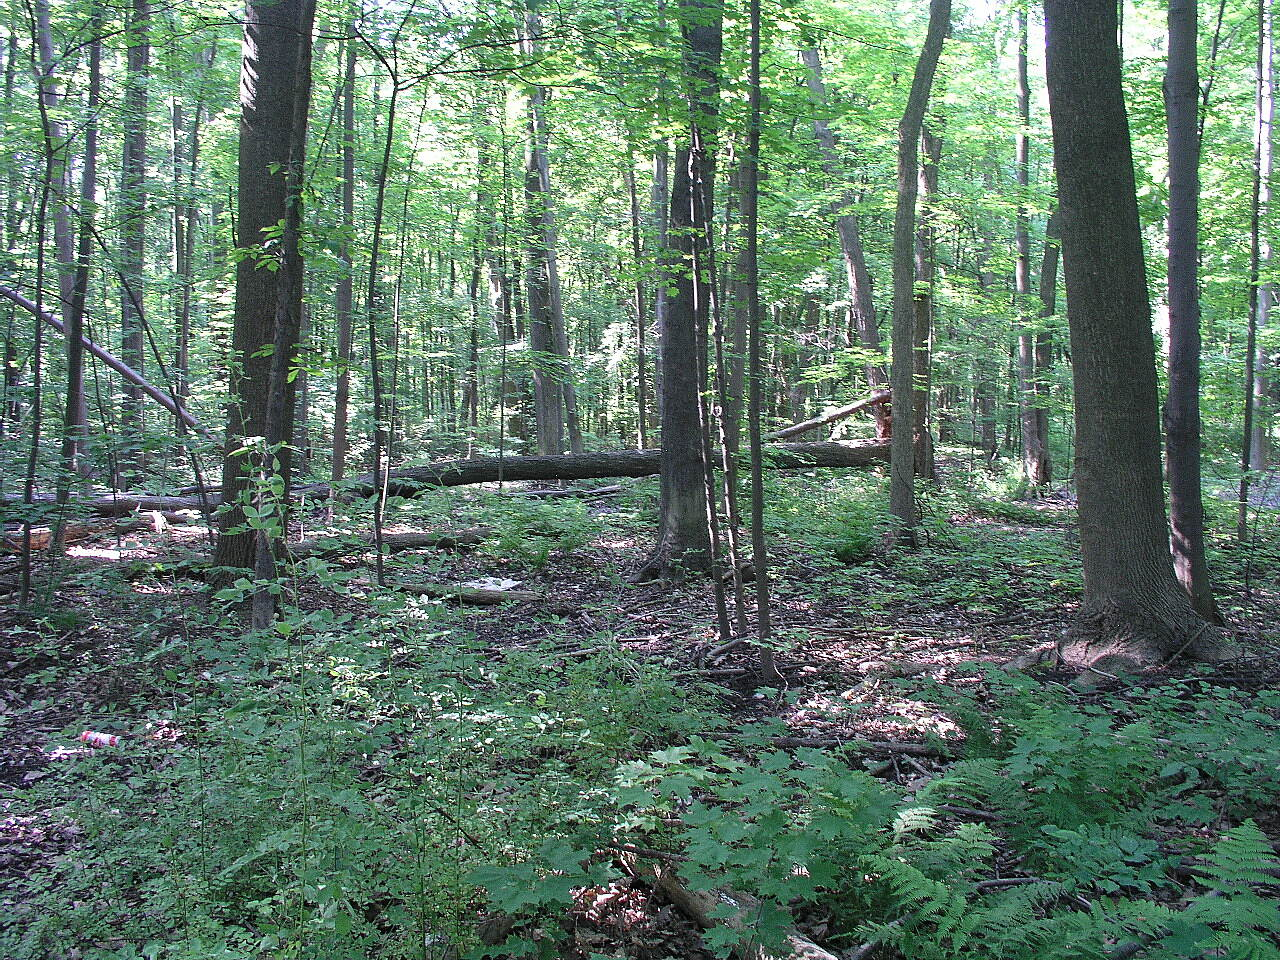 Metro Parkway Trail The Woods from the Path Viewing the woods along the Parkway path, just turn your head and enjoy.